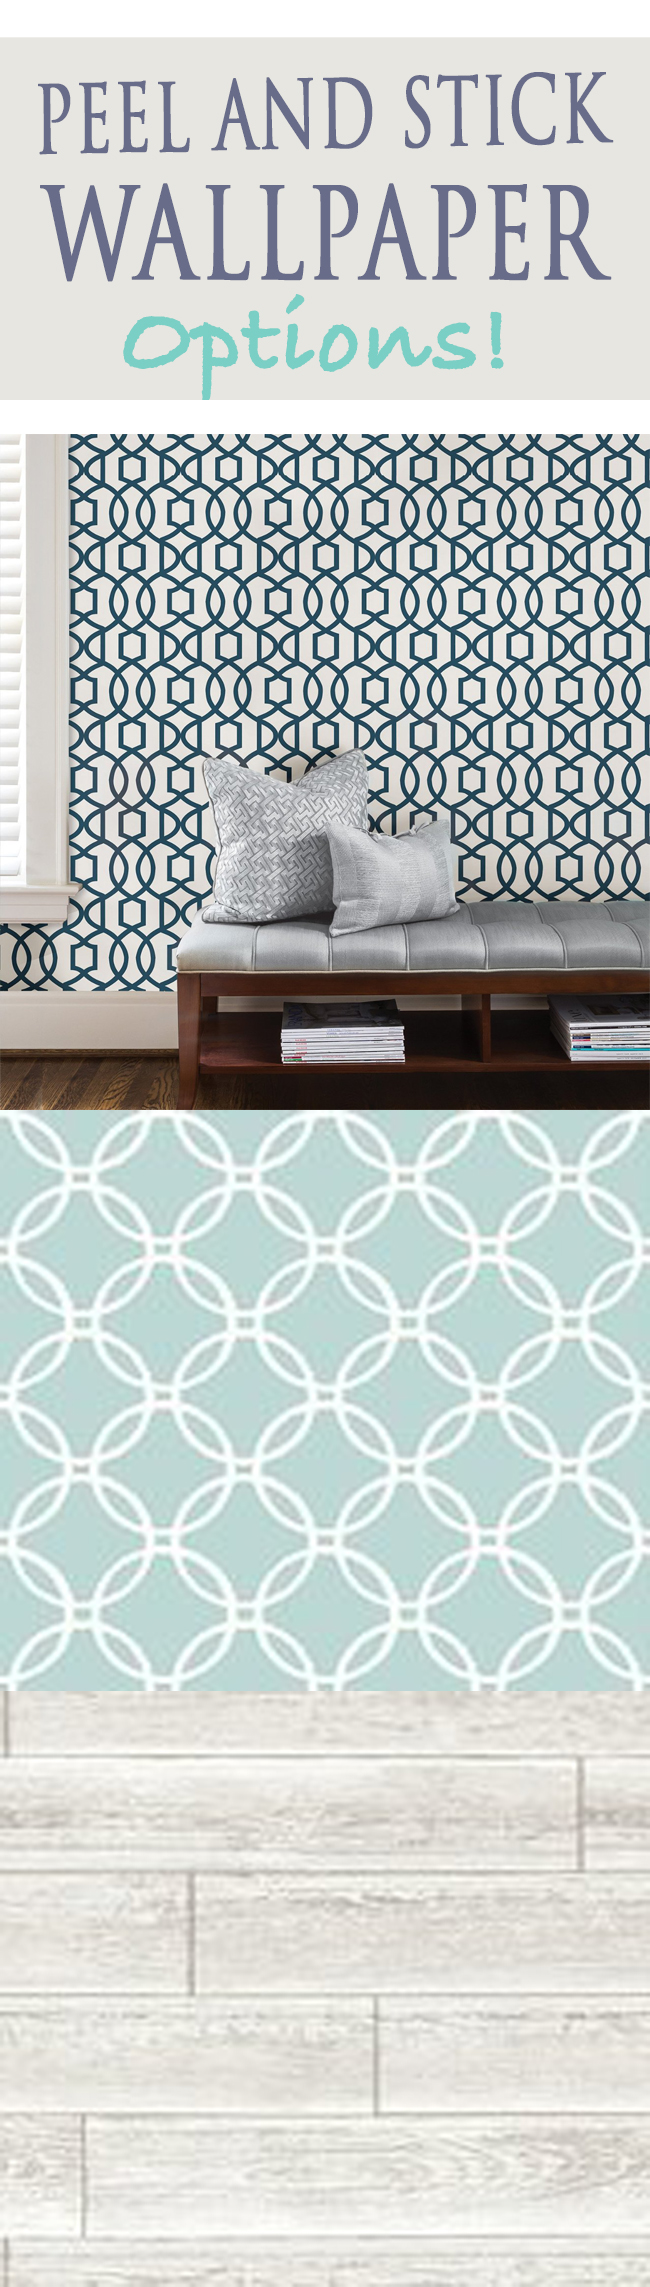 Peel And Stick Wallpaper Options Removable And Repositionable